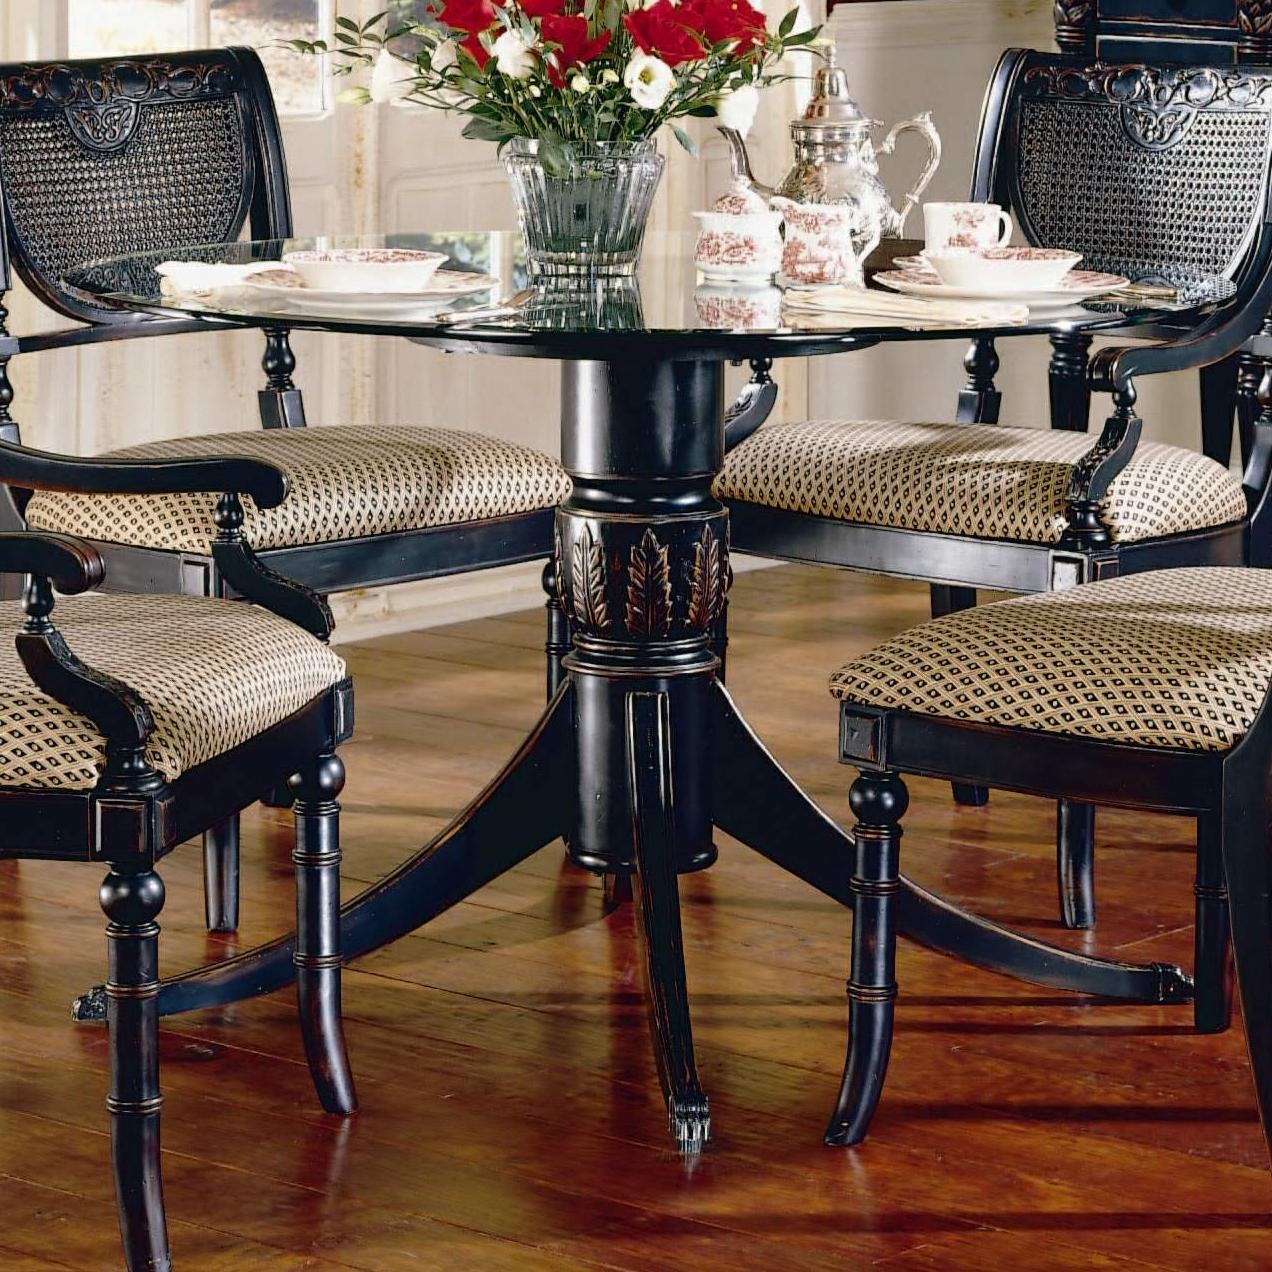 largo heritage round dining table with glass top and carved base